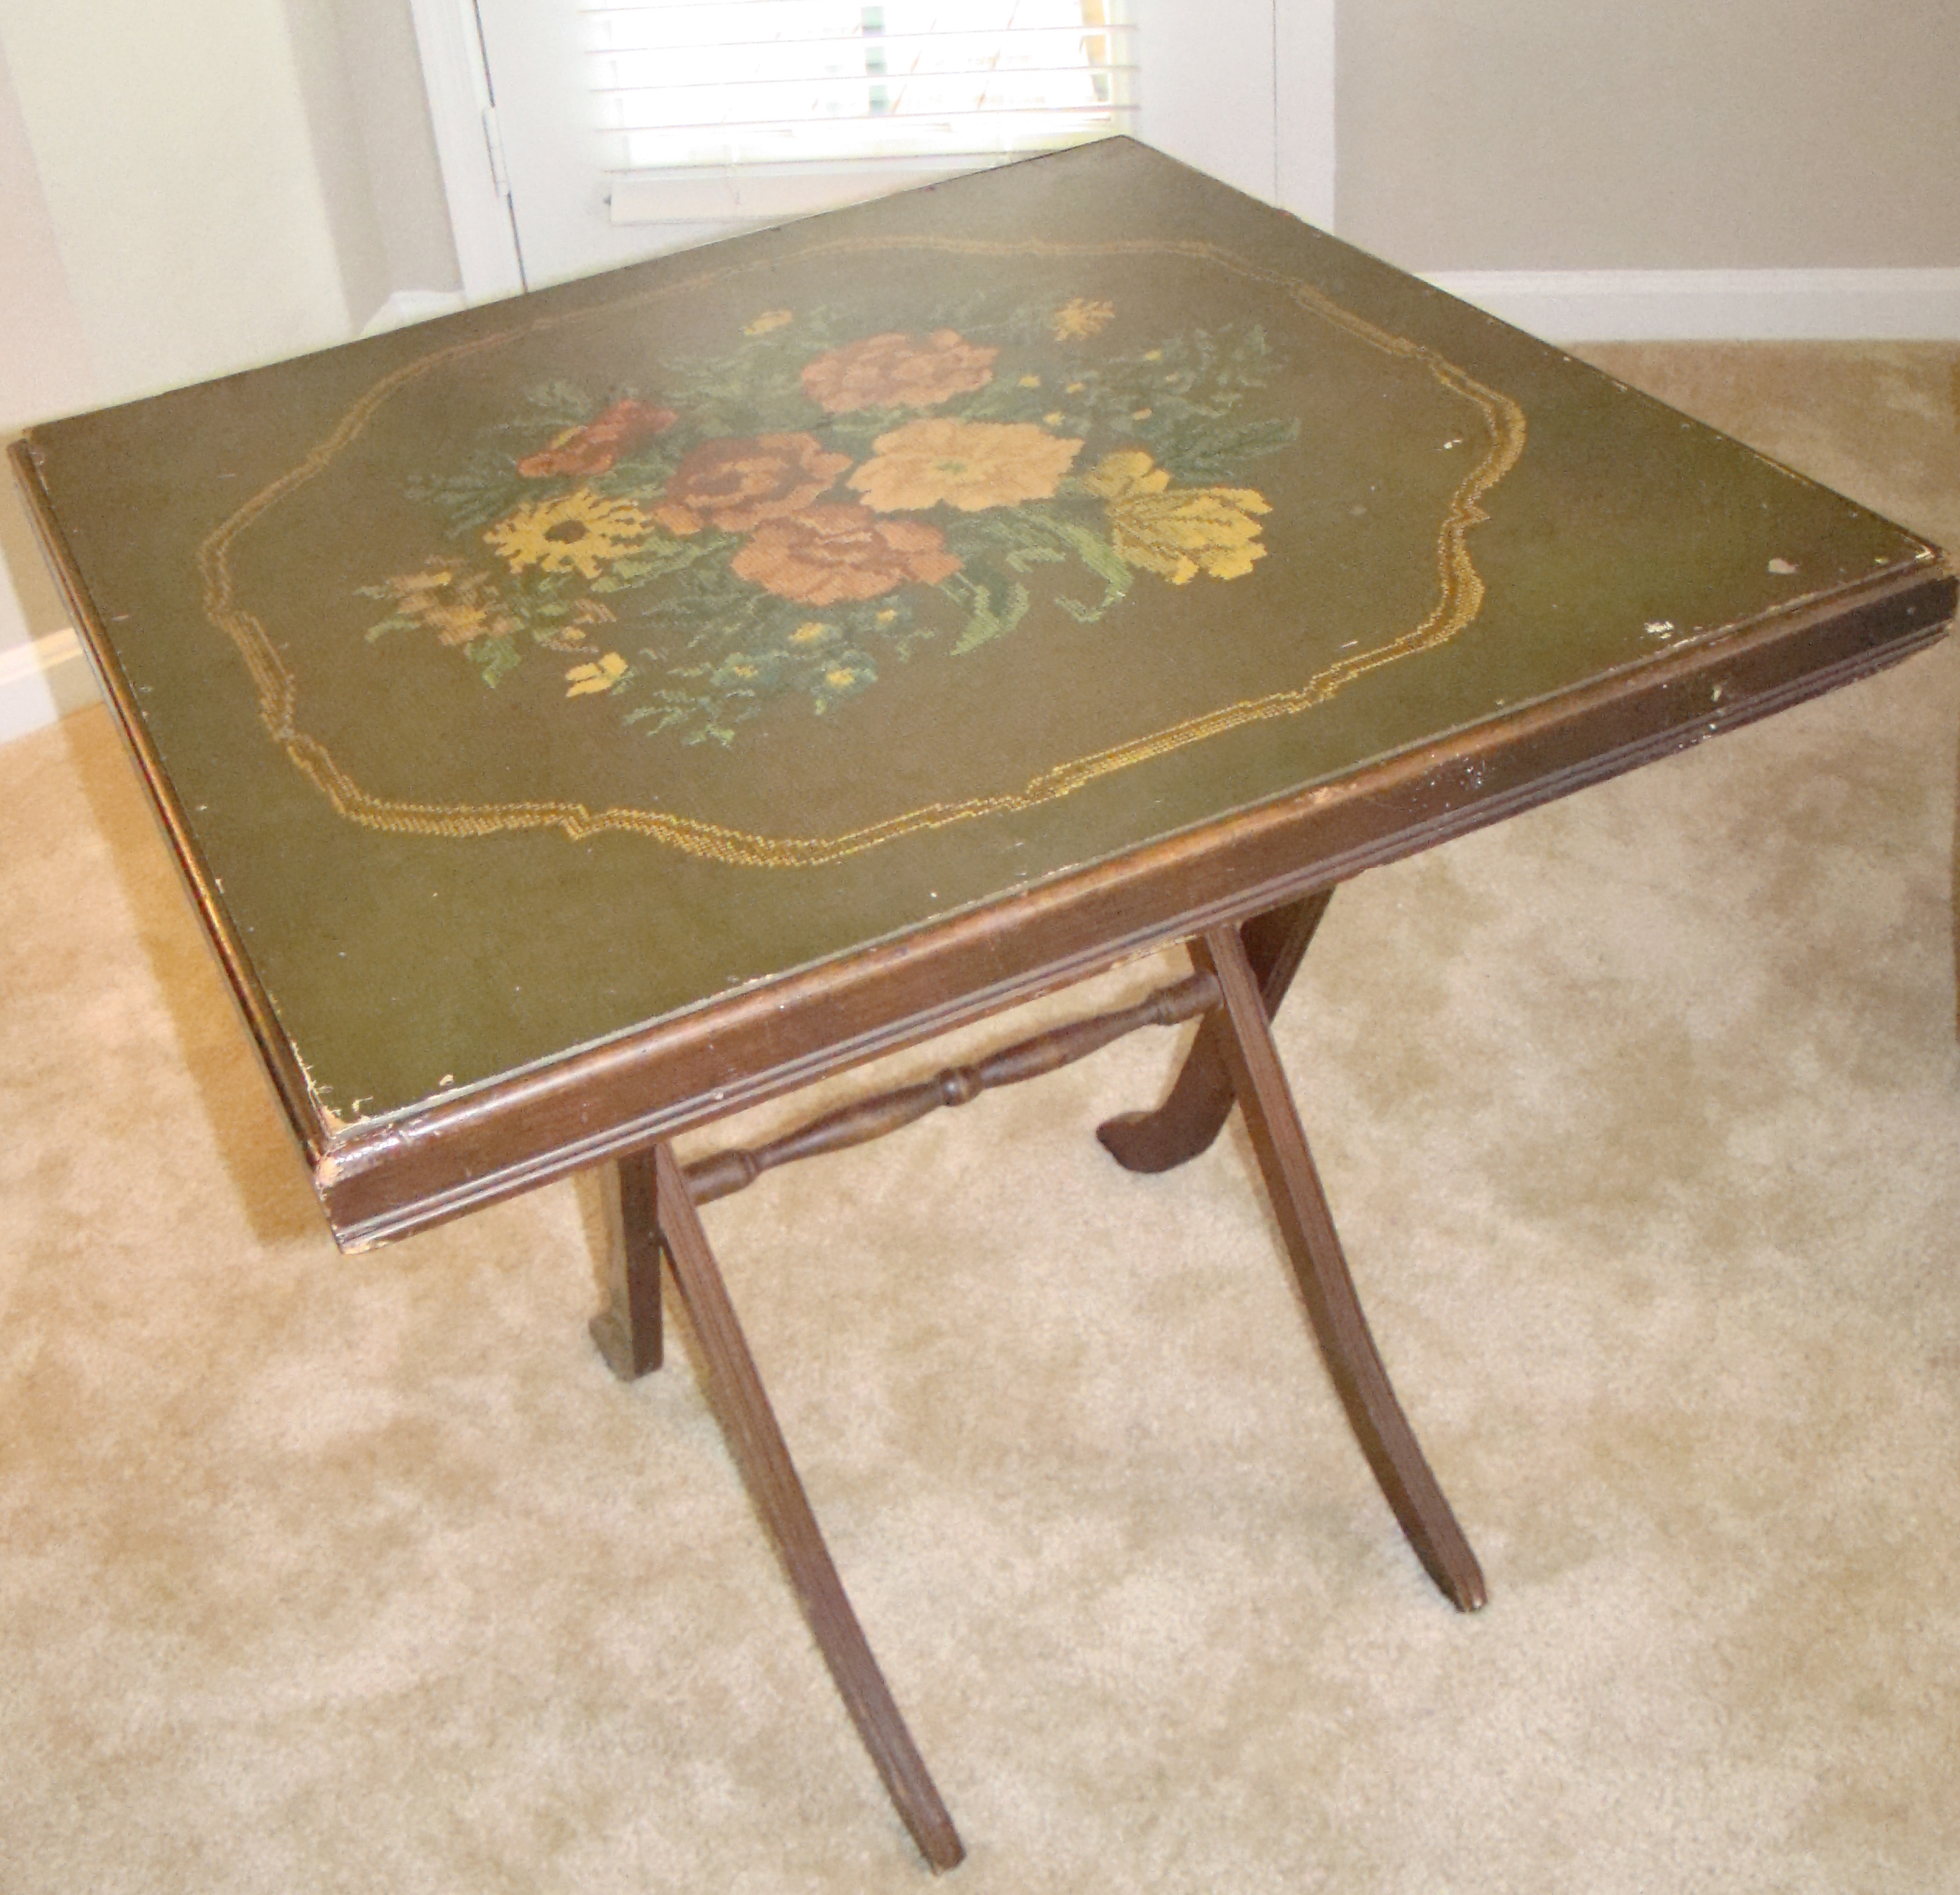 Topper table is tops in gypsy life moxy rants for Table bridge